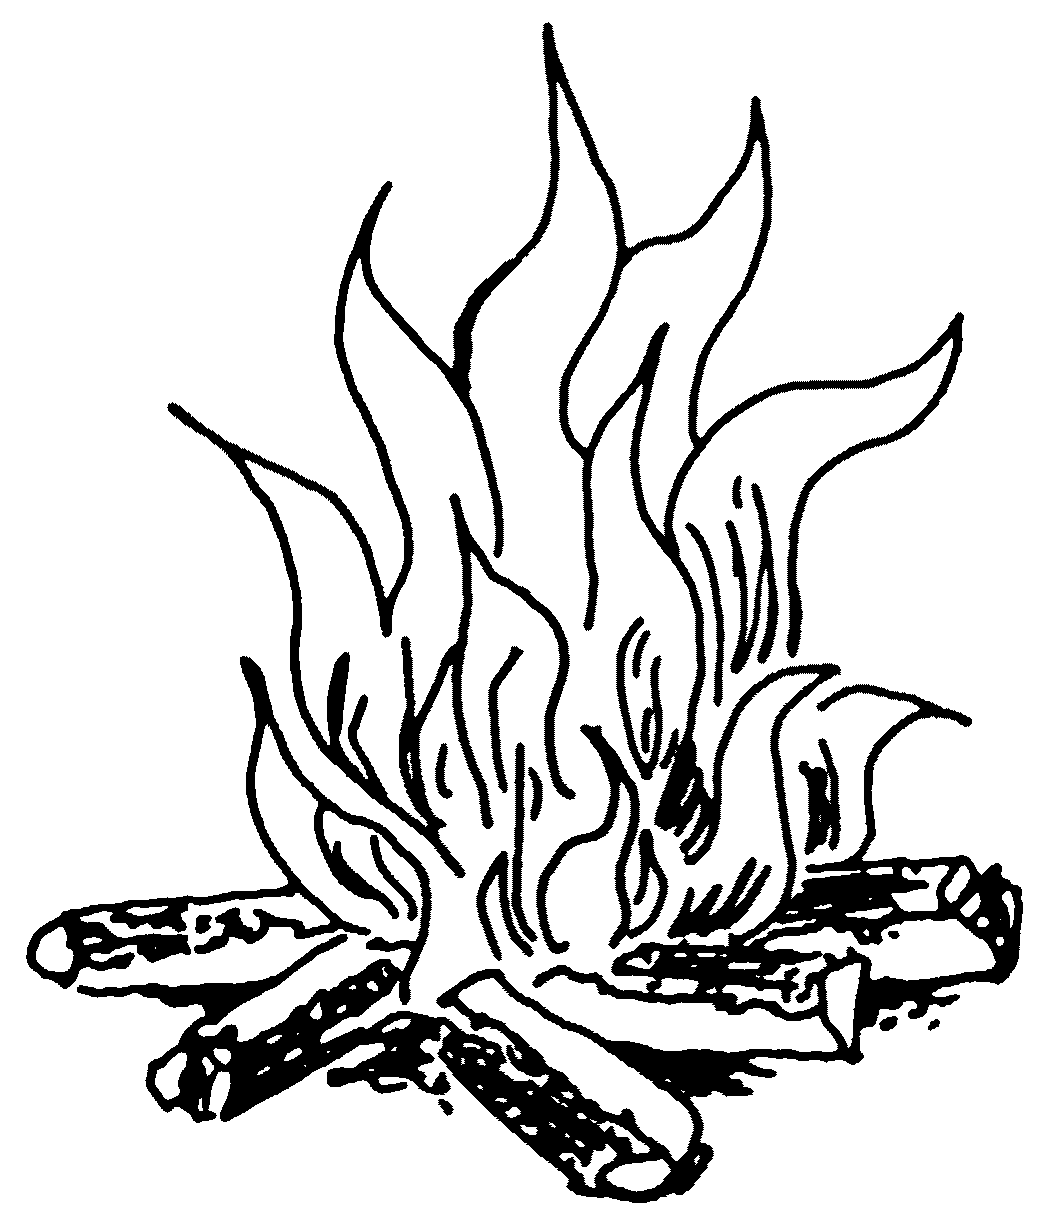 Line Drawing Fire : Fire line drawing clipart best